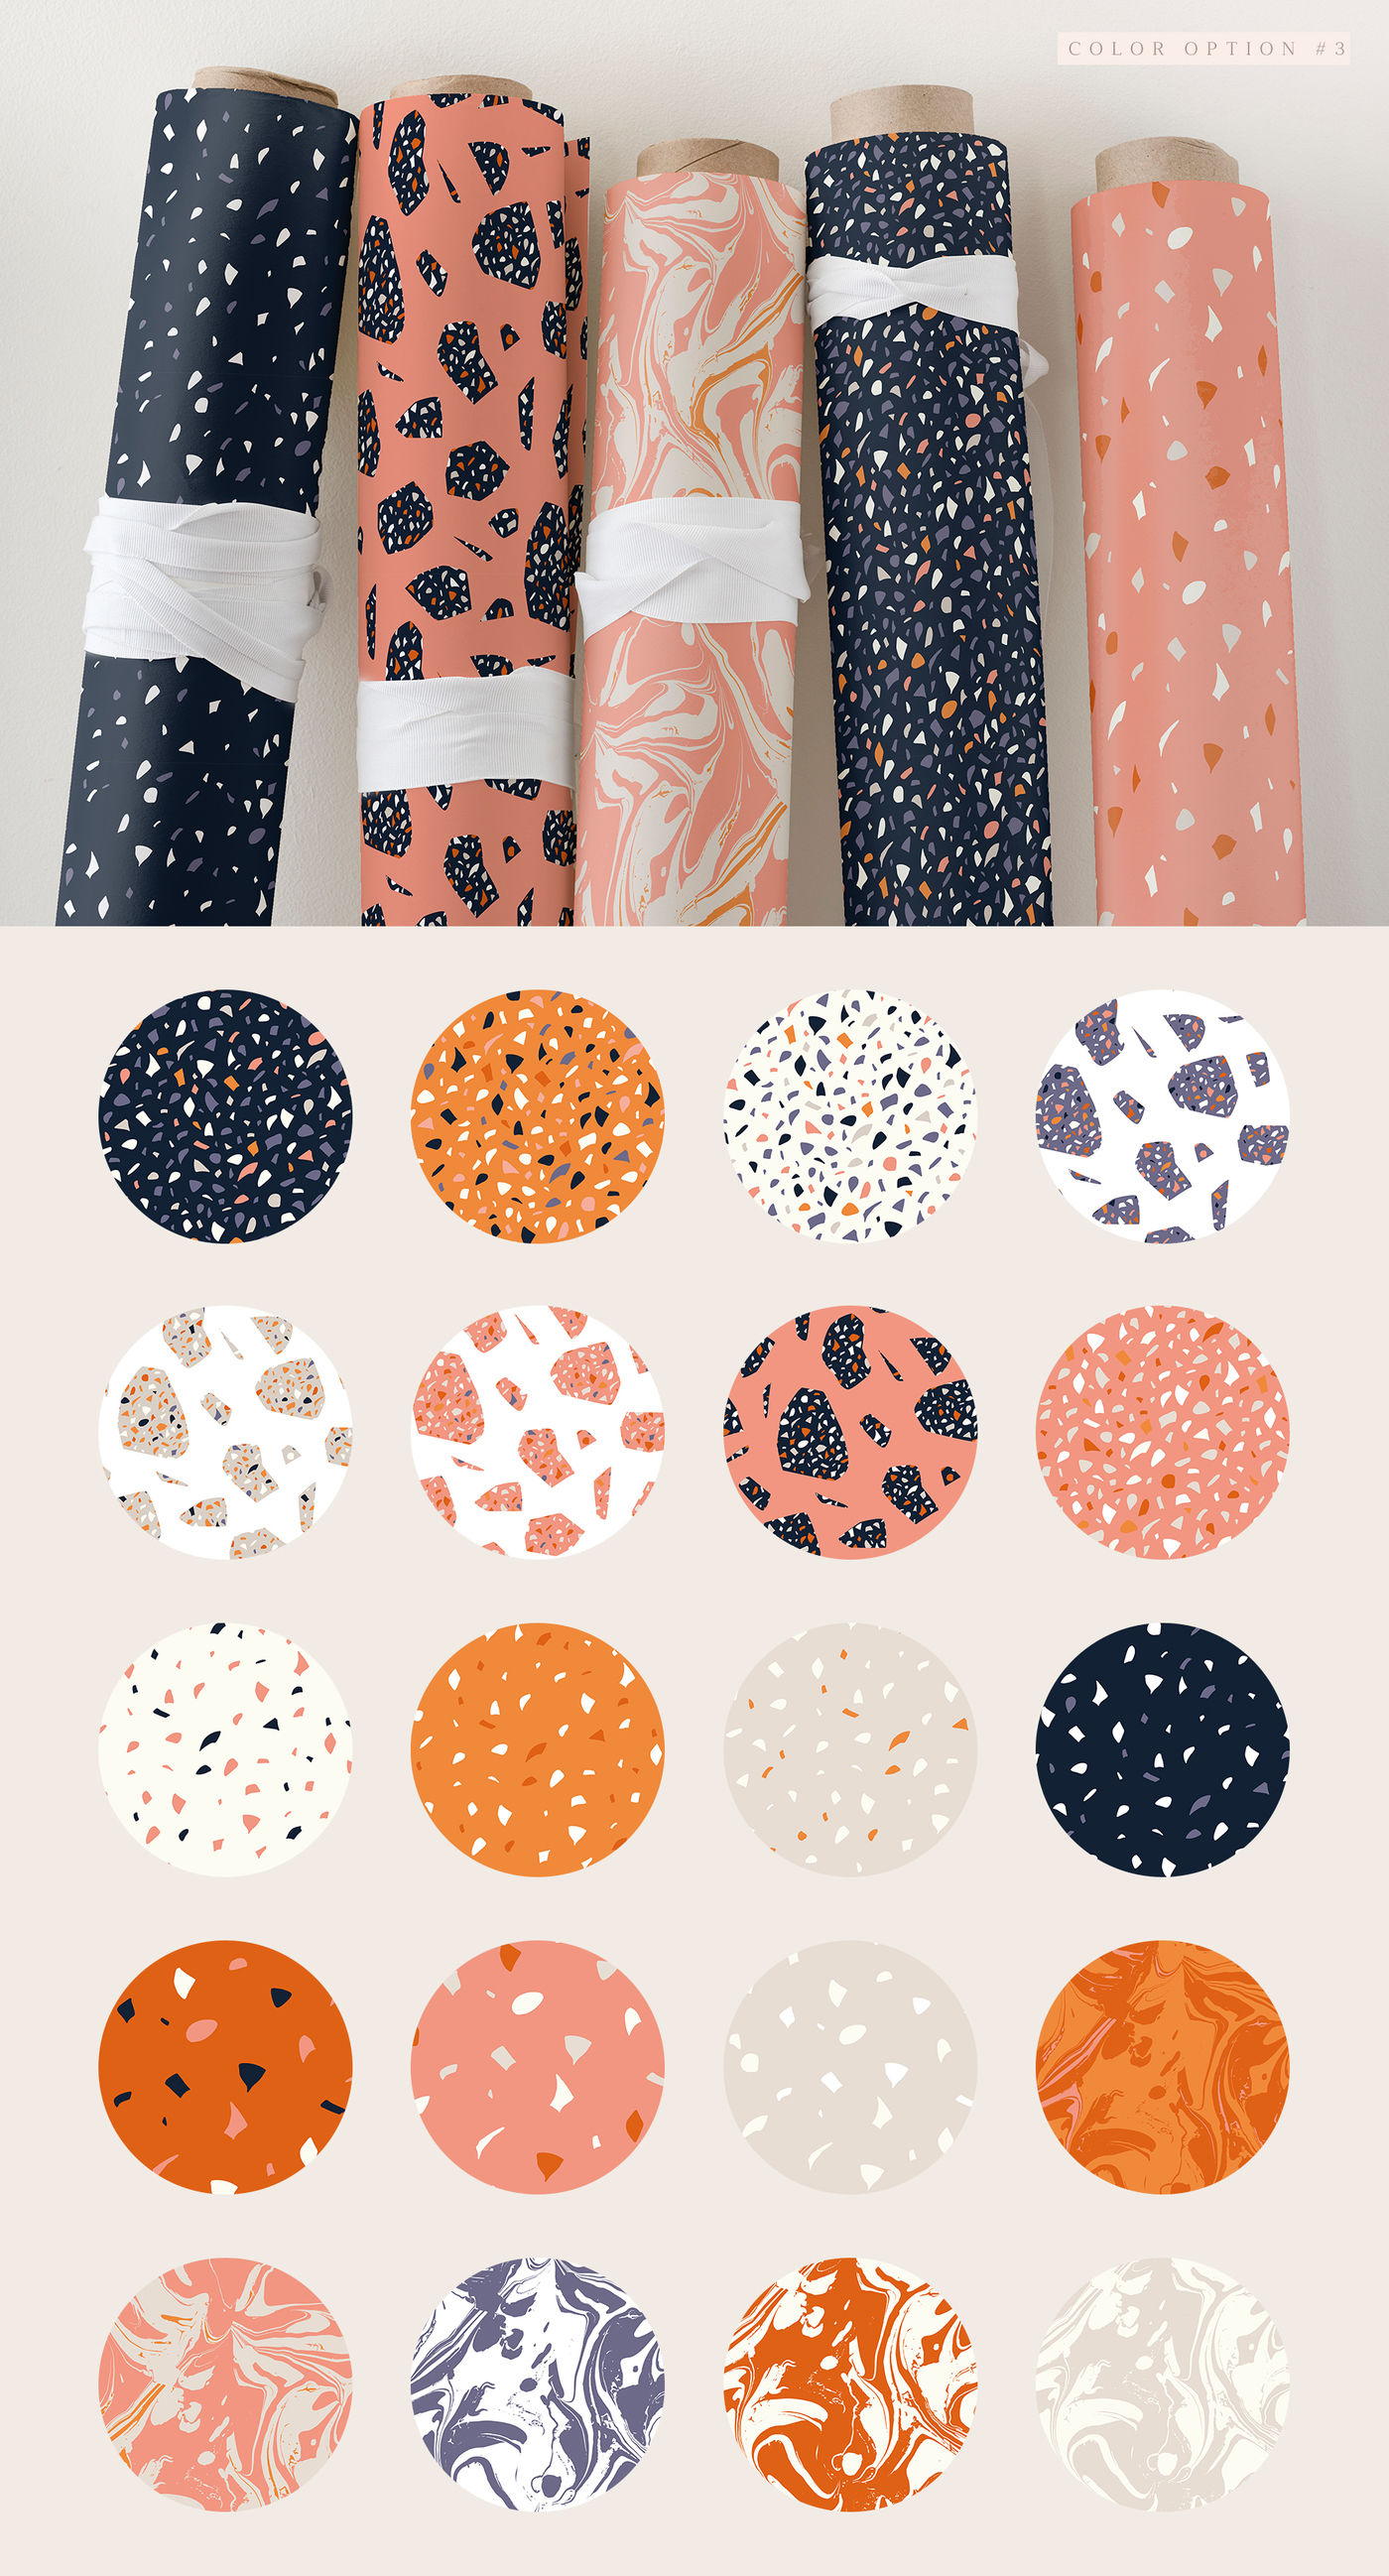 100 Terrazzo Marble Patterns By Inna Moreva Thehungryjpeg Com